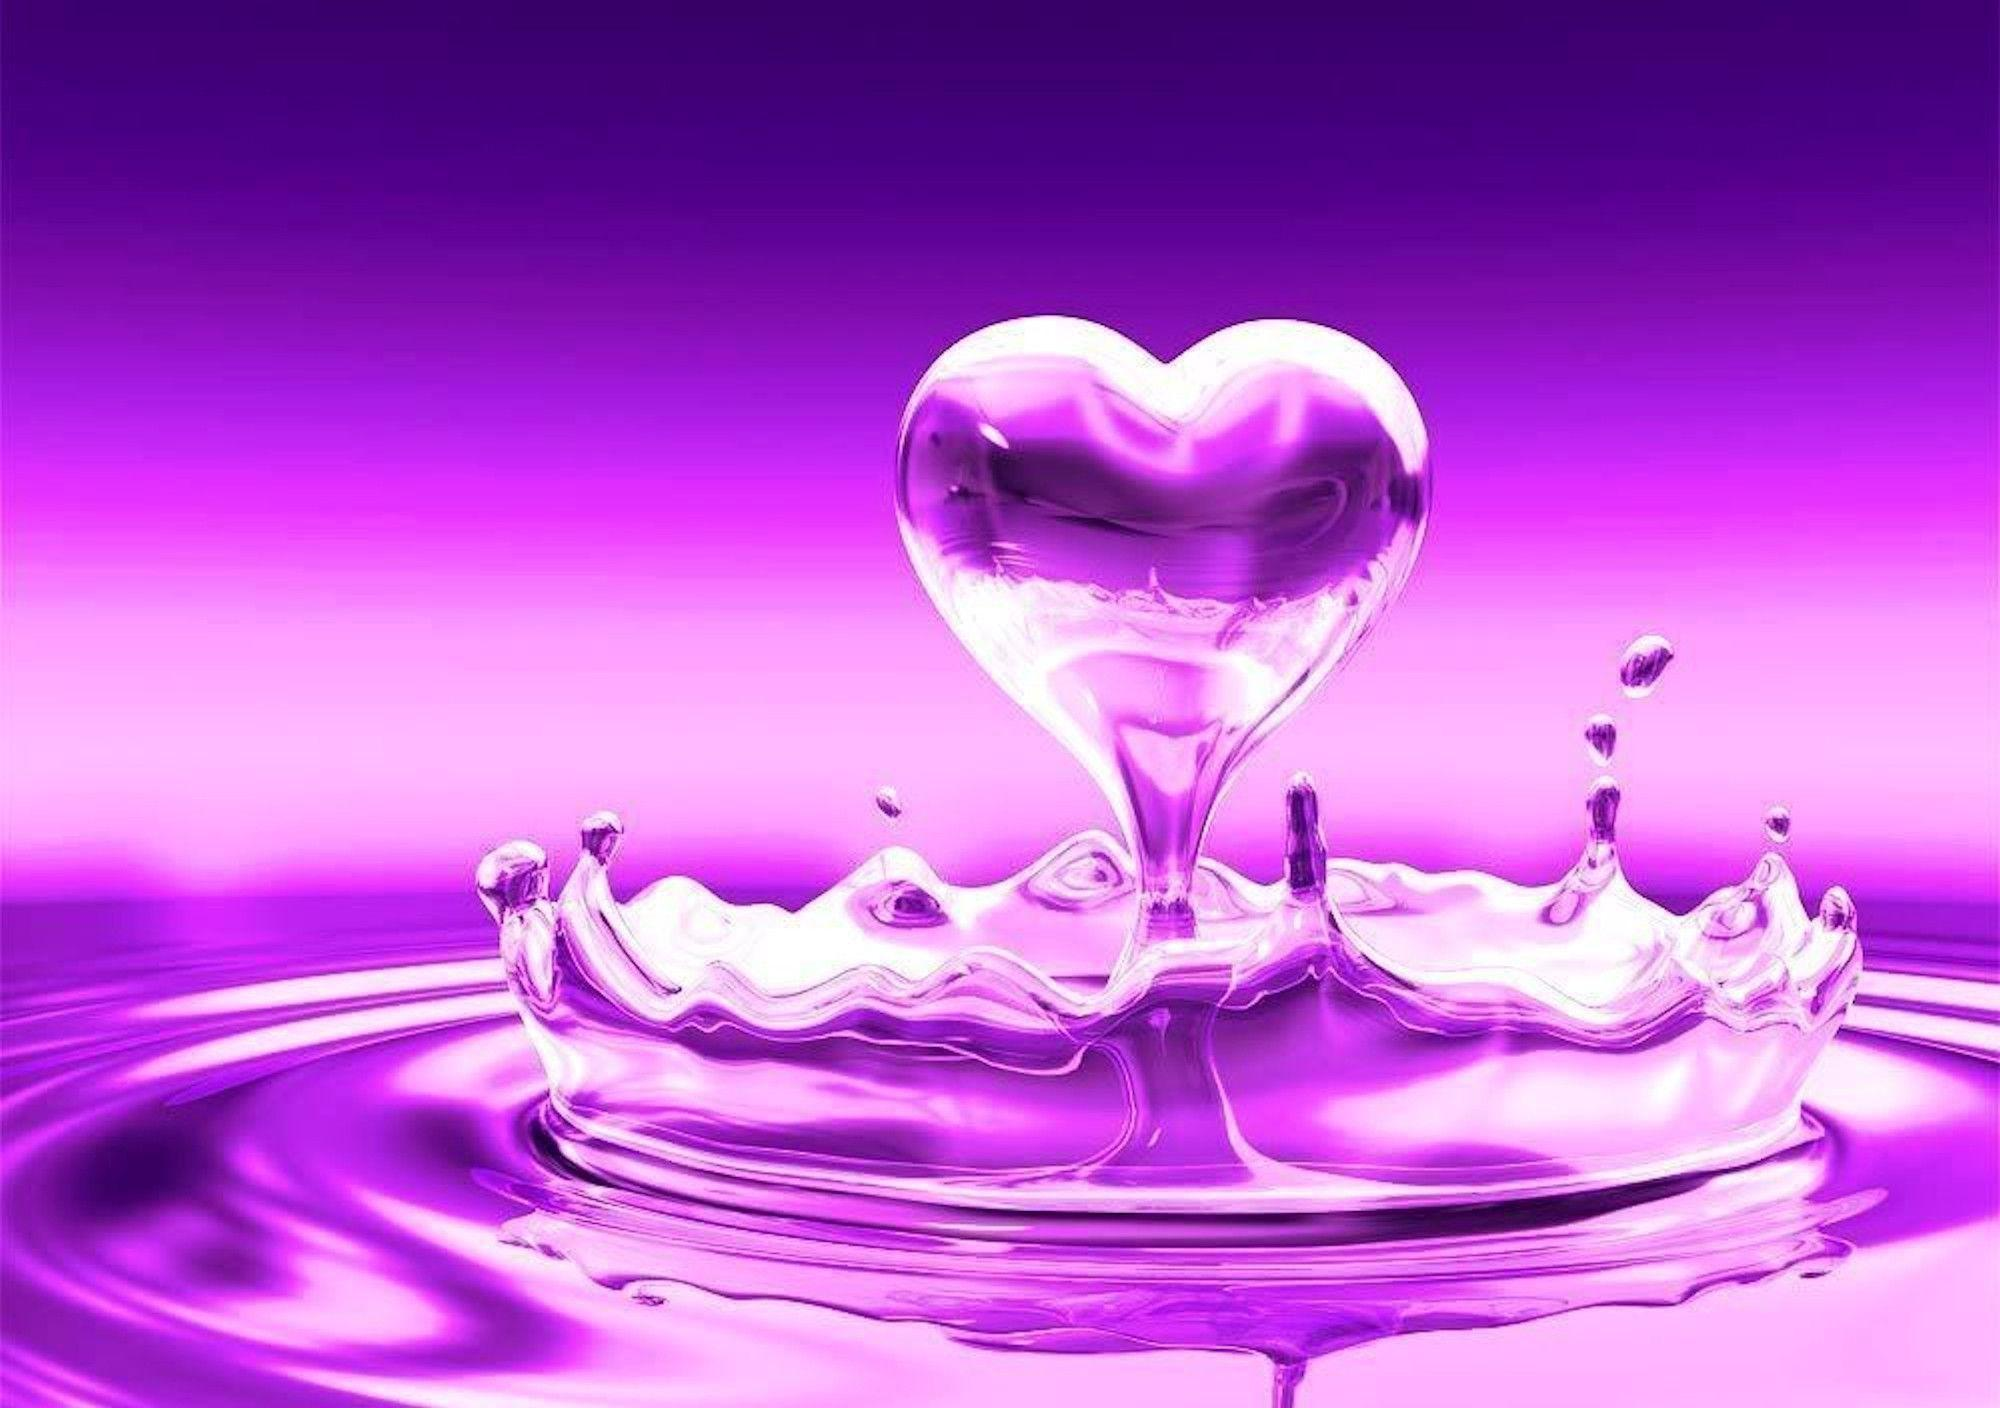 All Love Wallpaper Images : Purple Heart Wallpapers - Wallpaper cave